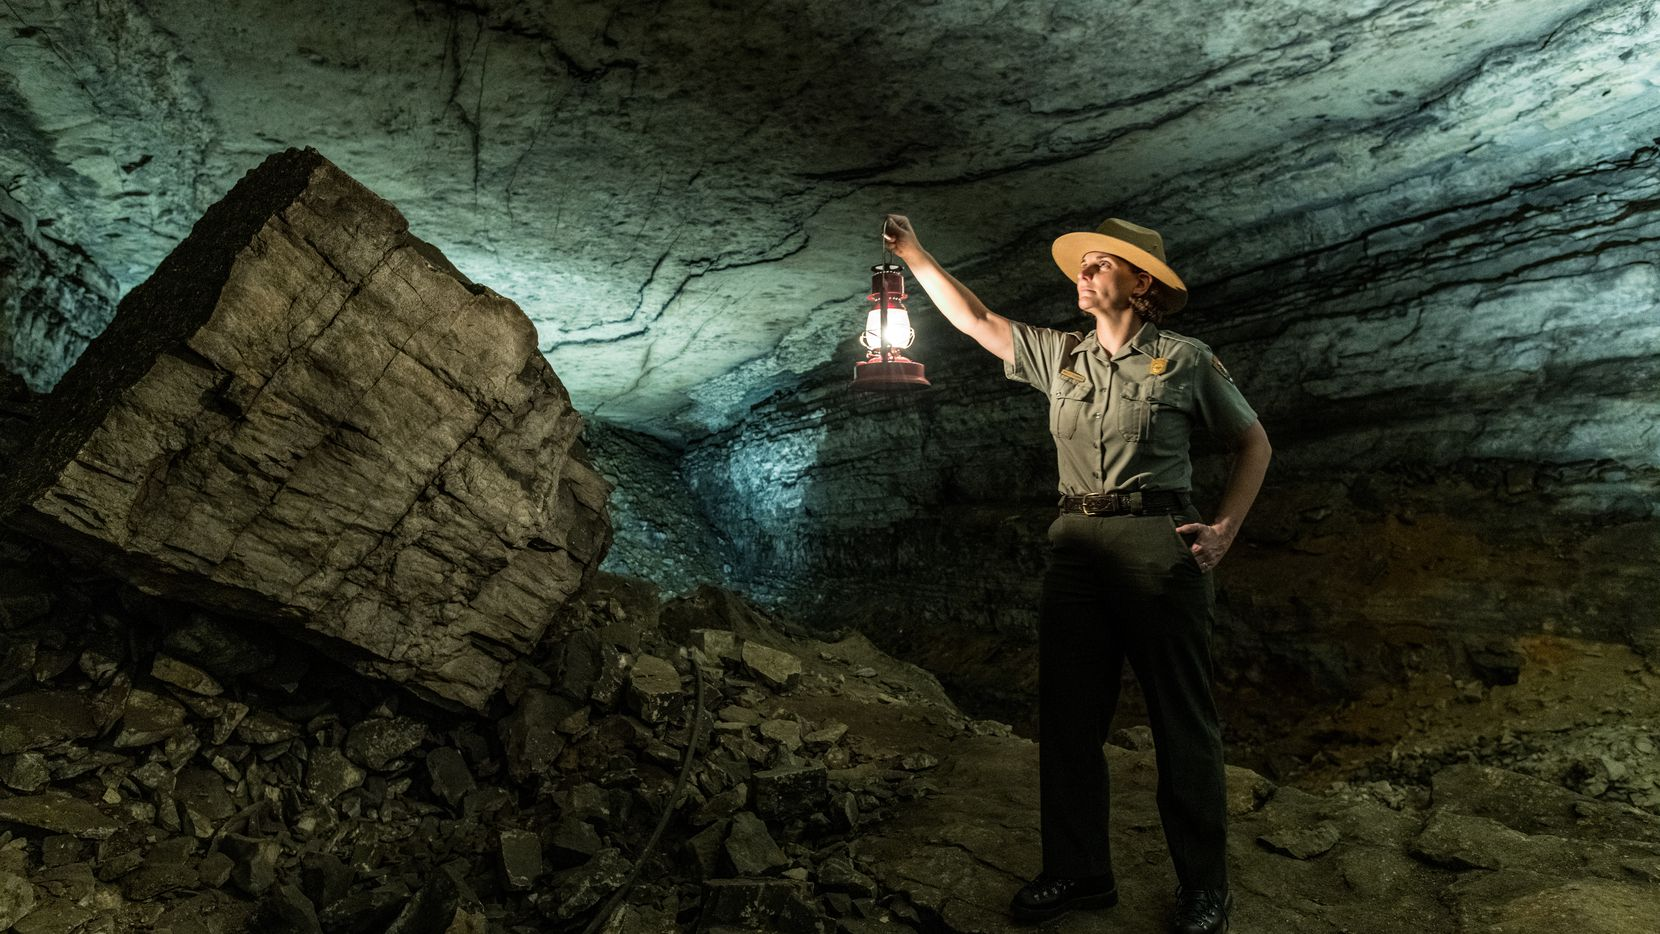 A tour guide illuminates the limestone walls inside Mammoth Cave.